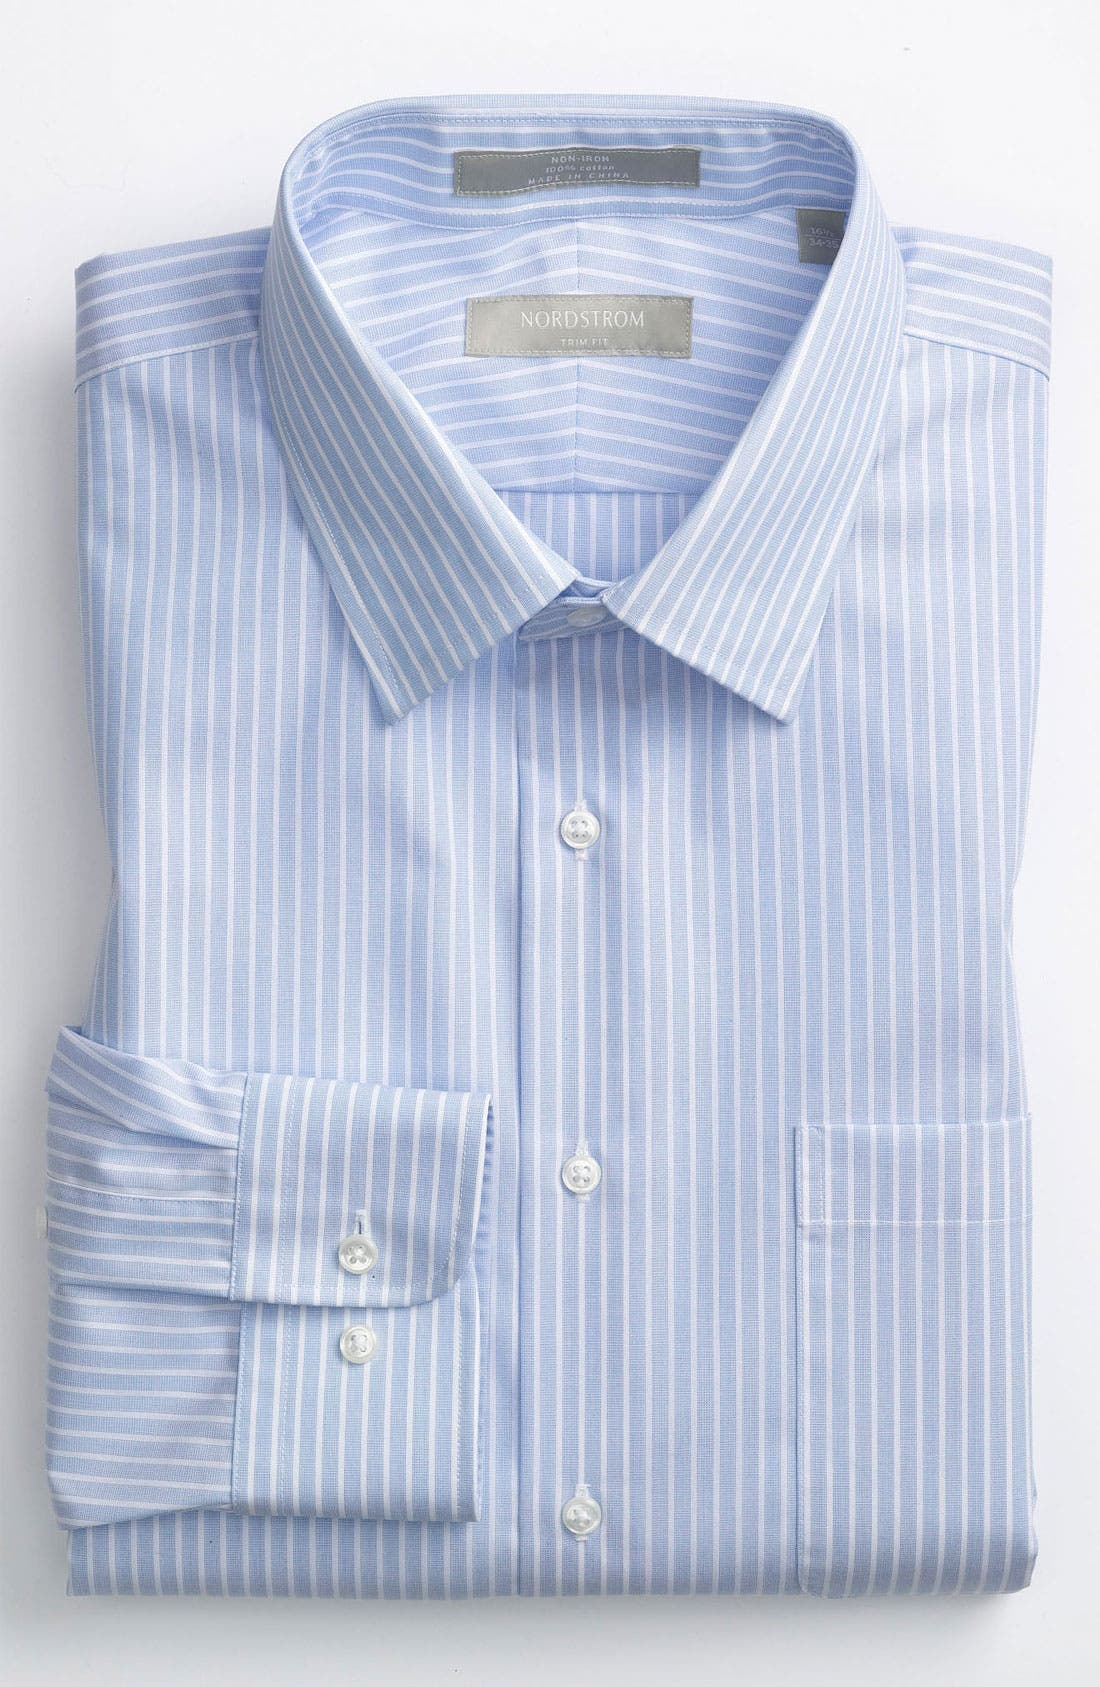 Alternate Image 1 Selected - Nordstrom Trim Fit Non-Iron Dress Shirt (Online Exclusive)